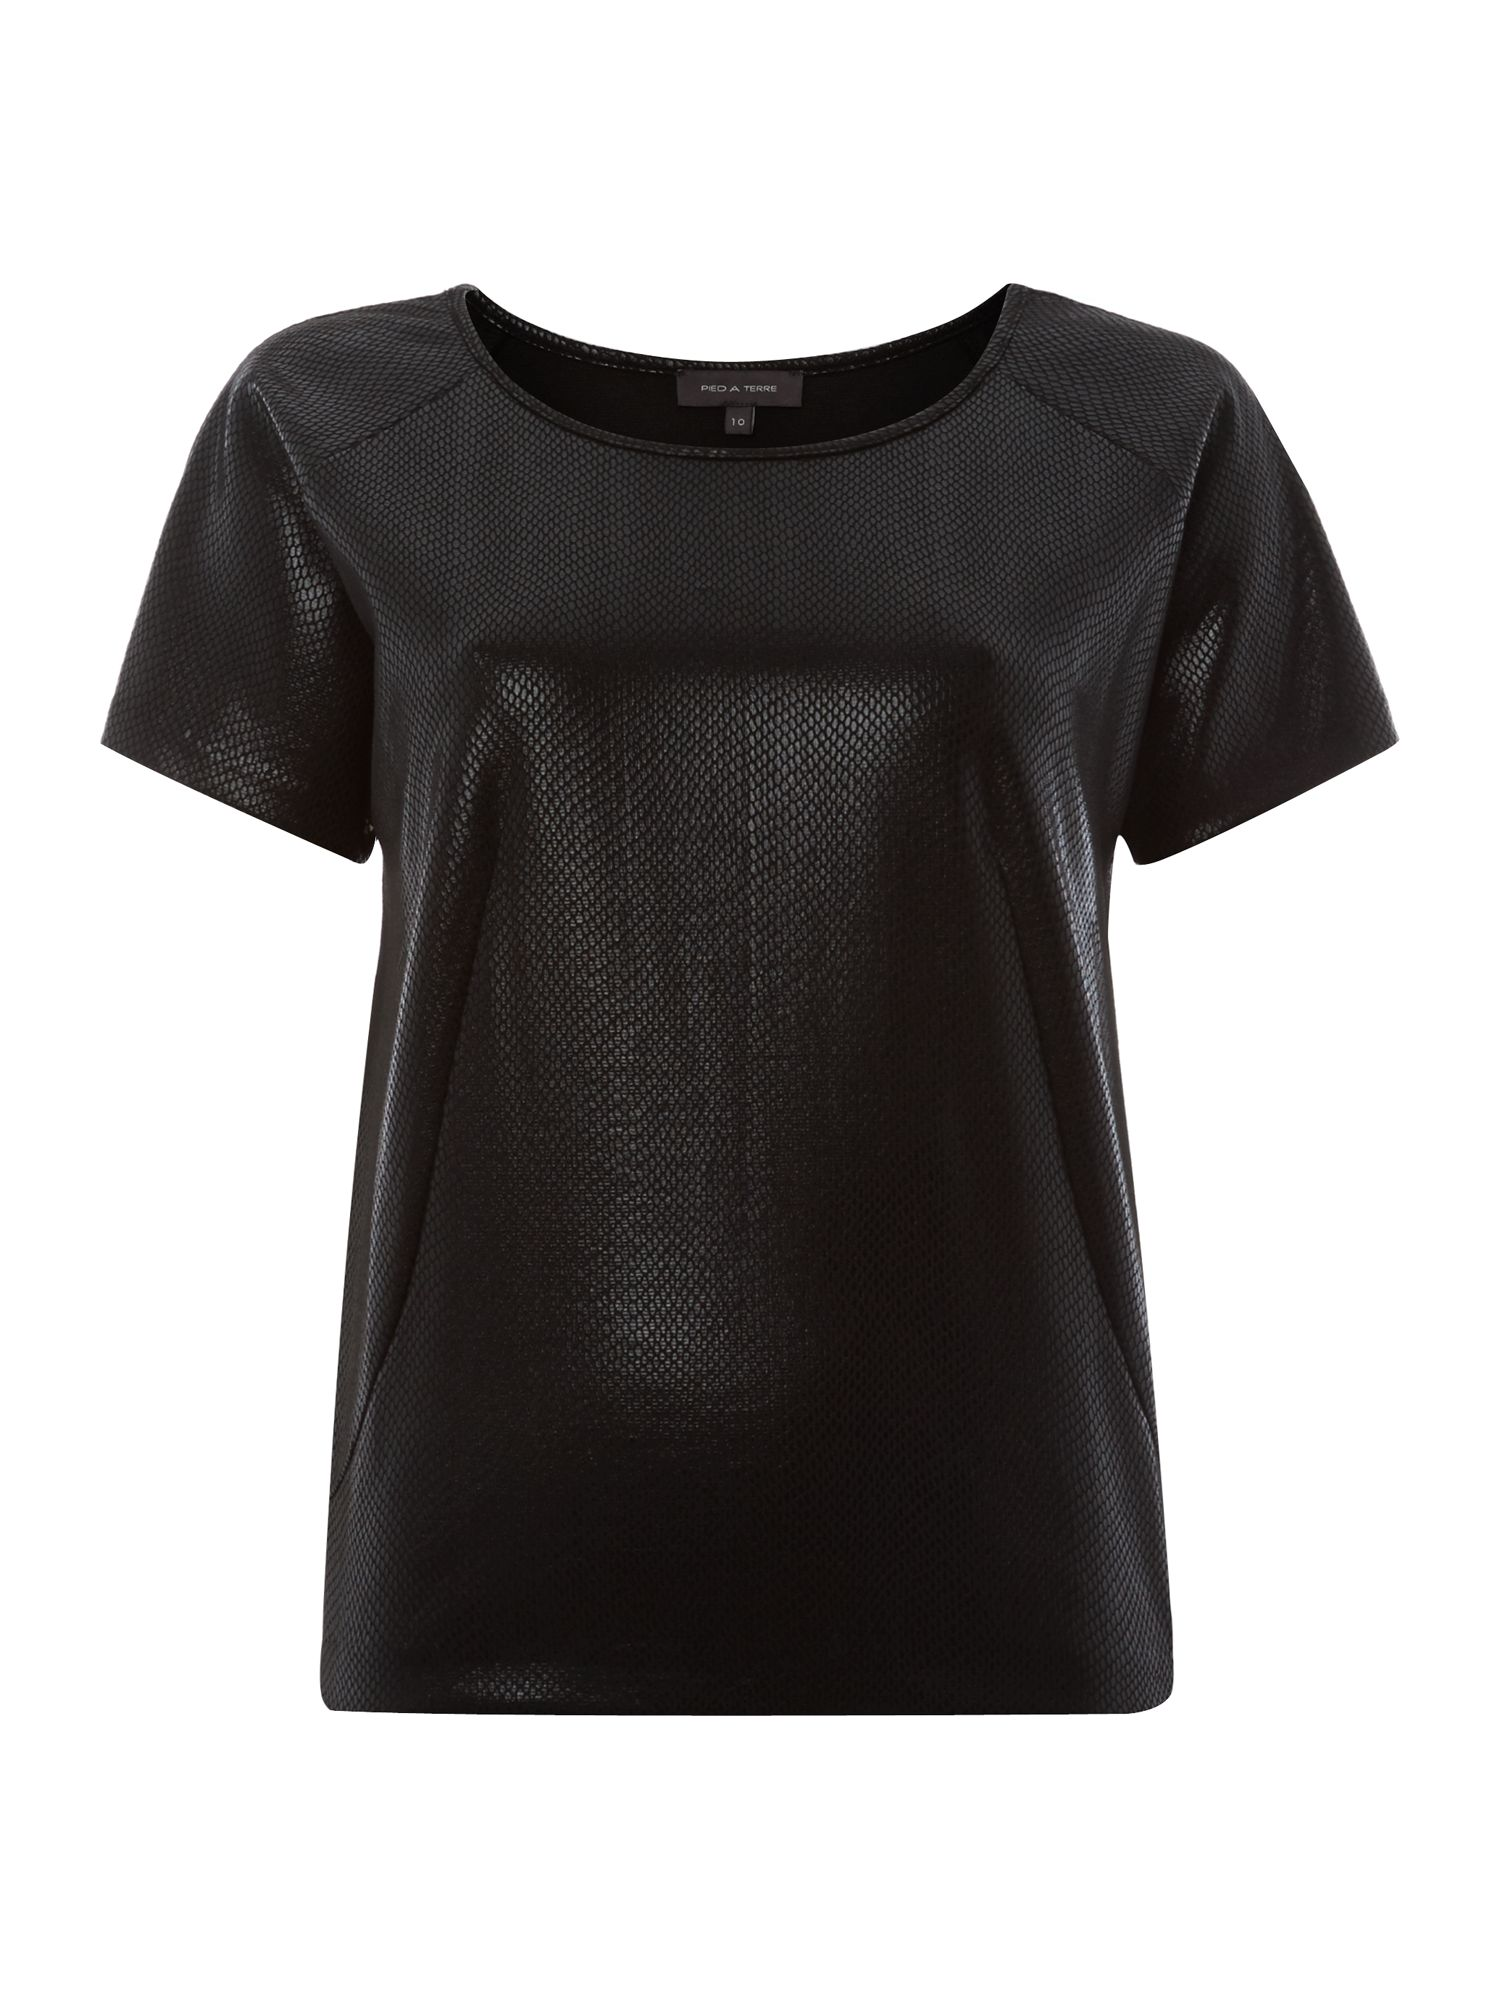 Luxe Couture Tee